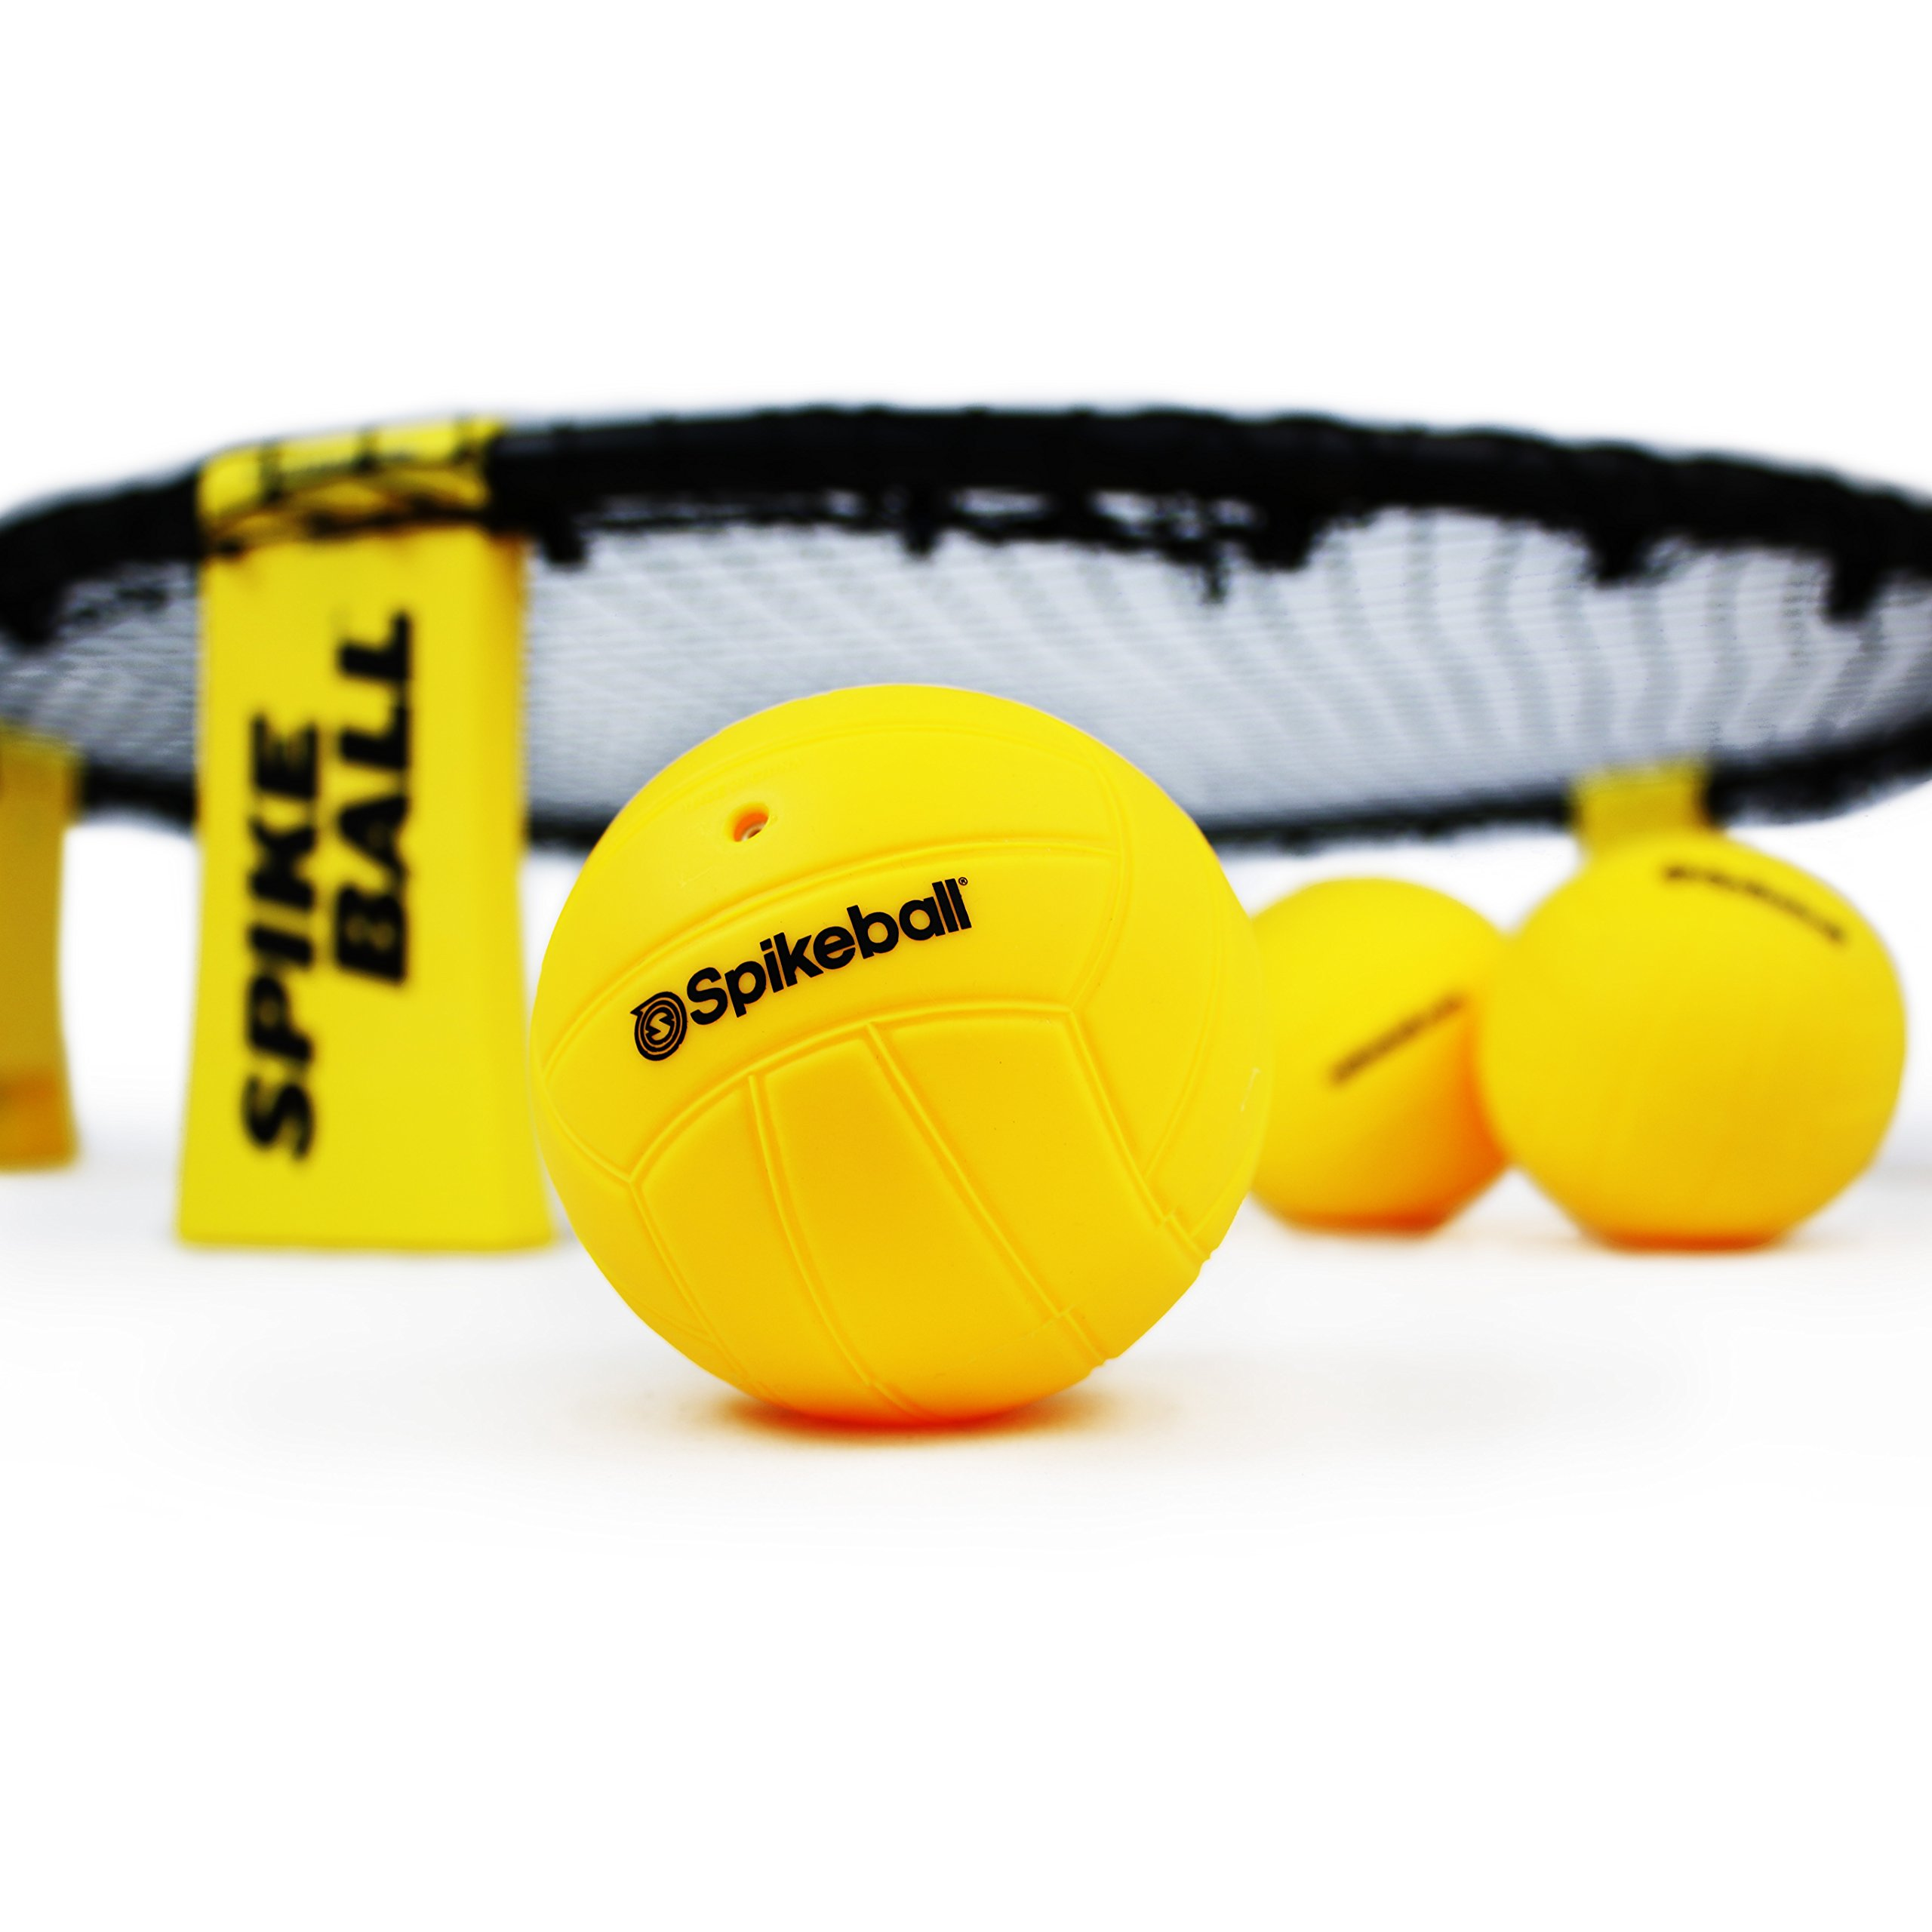 Spikeball 3 Ball Sports Game Set - Outdoor Indoor Gift for Teens, Family - Yard, Lawn, Beach, Tailgate - Includes Playing Net, 3 Balls, Drawstring Bag, Rule Book- As Seen on Shark Tank (3 Ball Set) by Spikeball (Image #7)